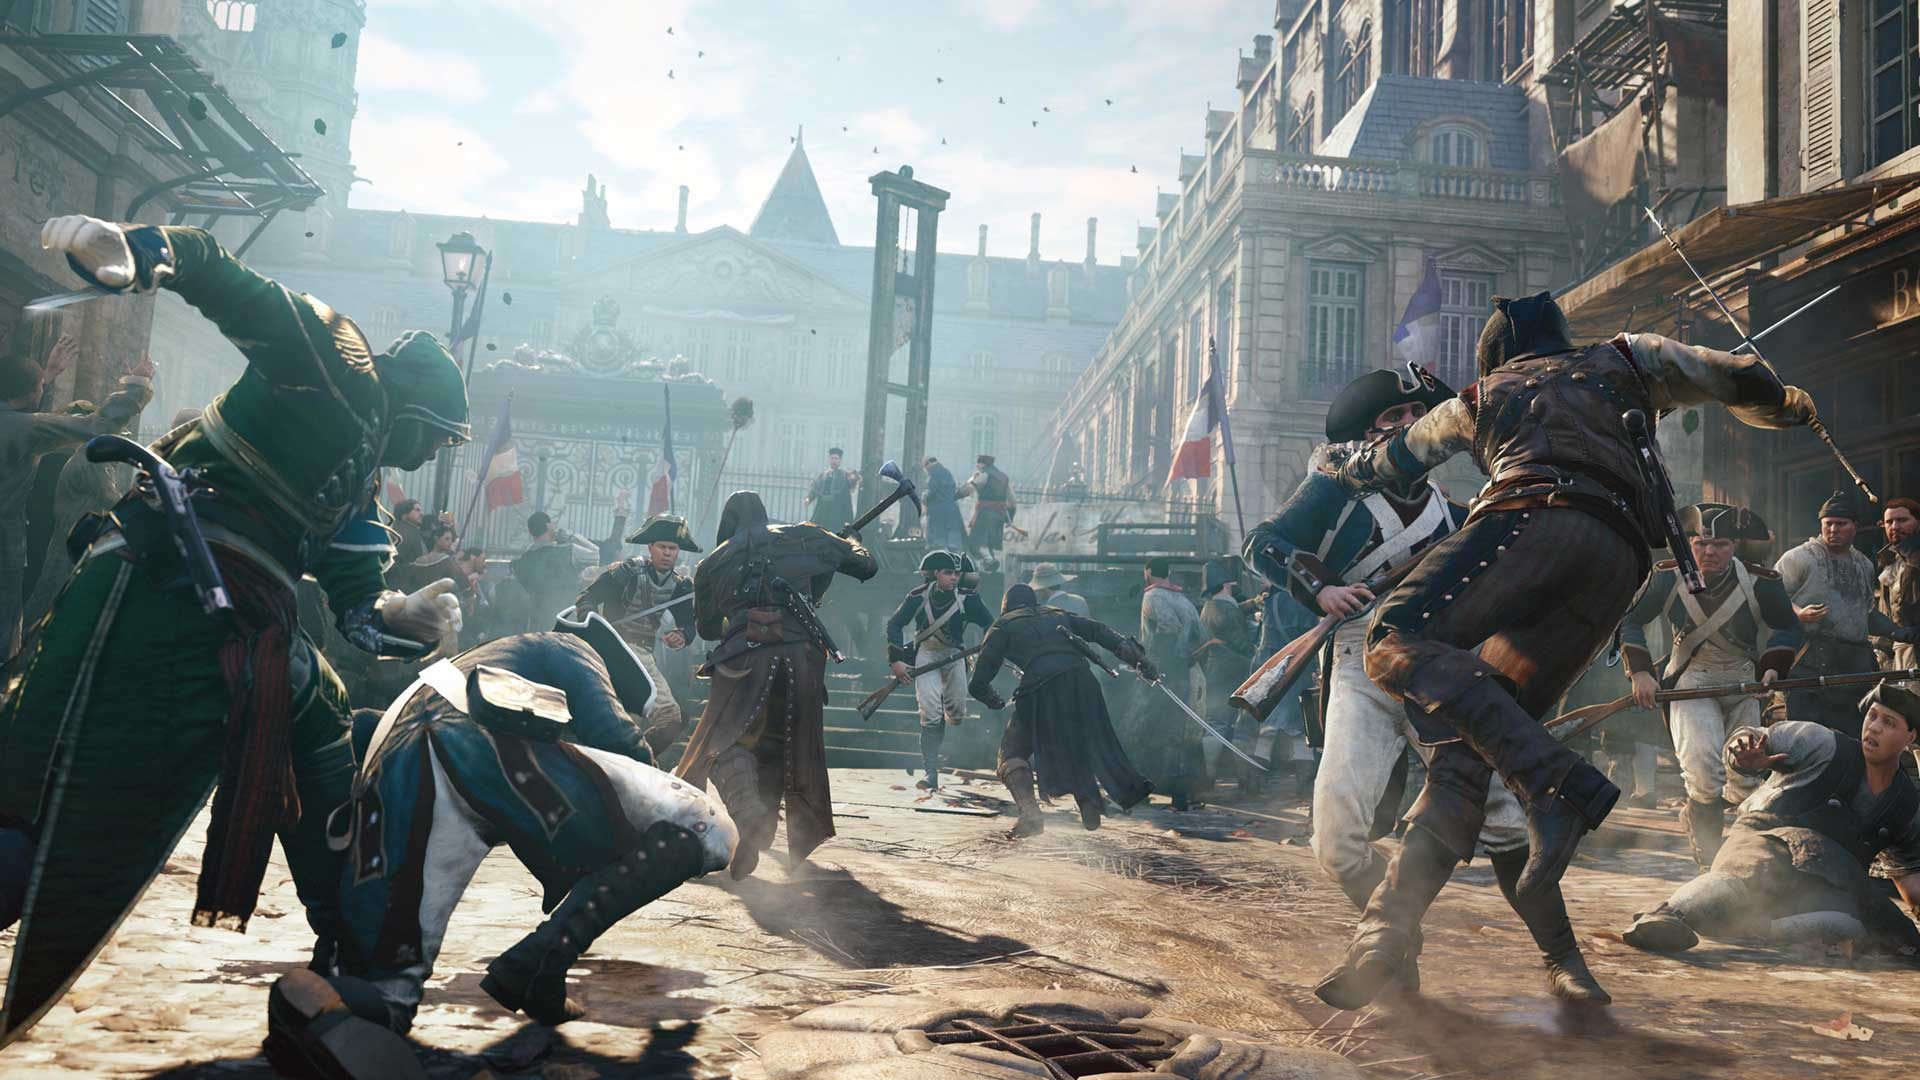 French Revolution Setting For Assassin S Creed Unity Emphasizes